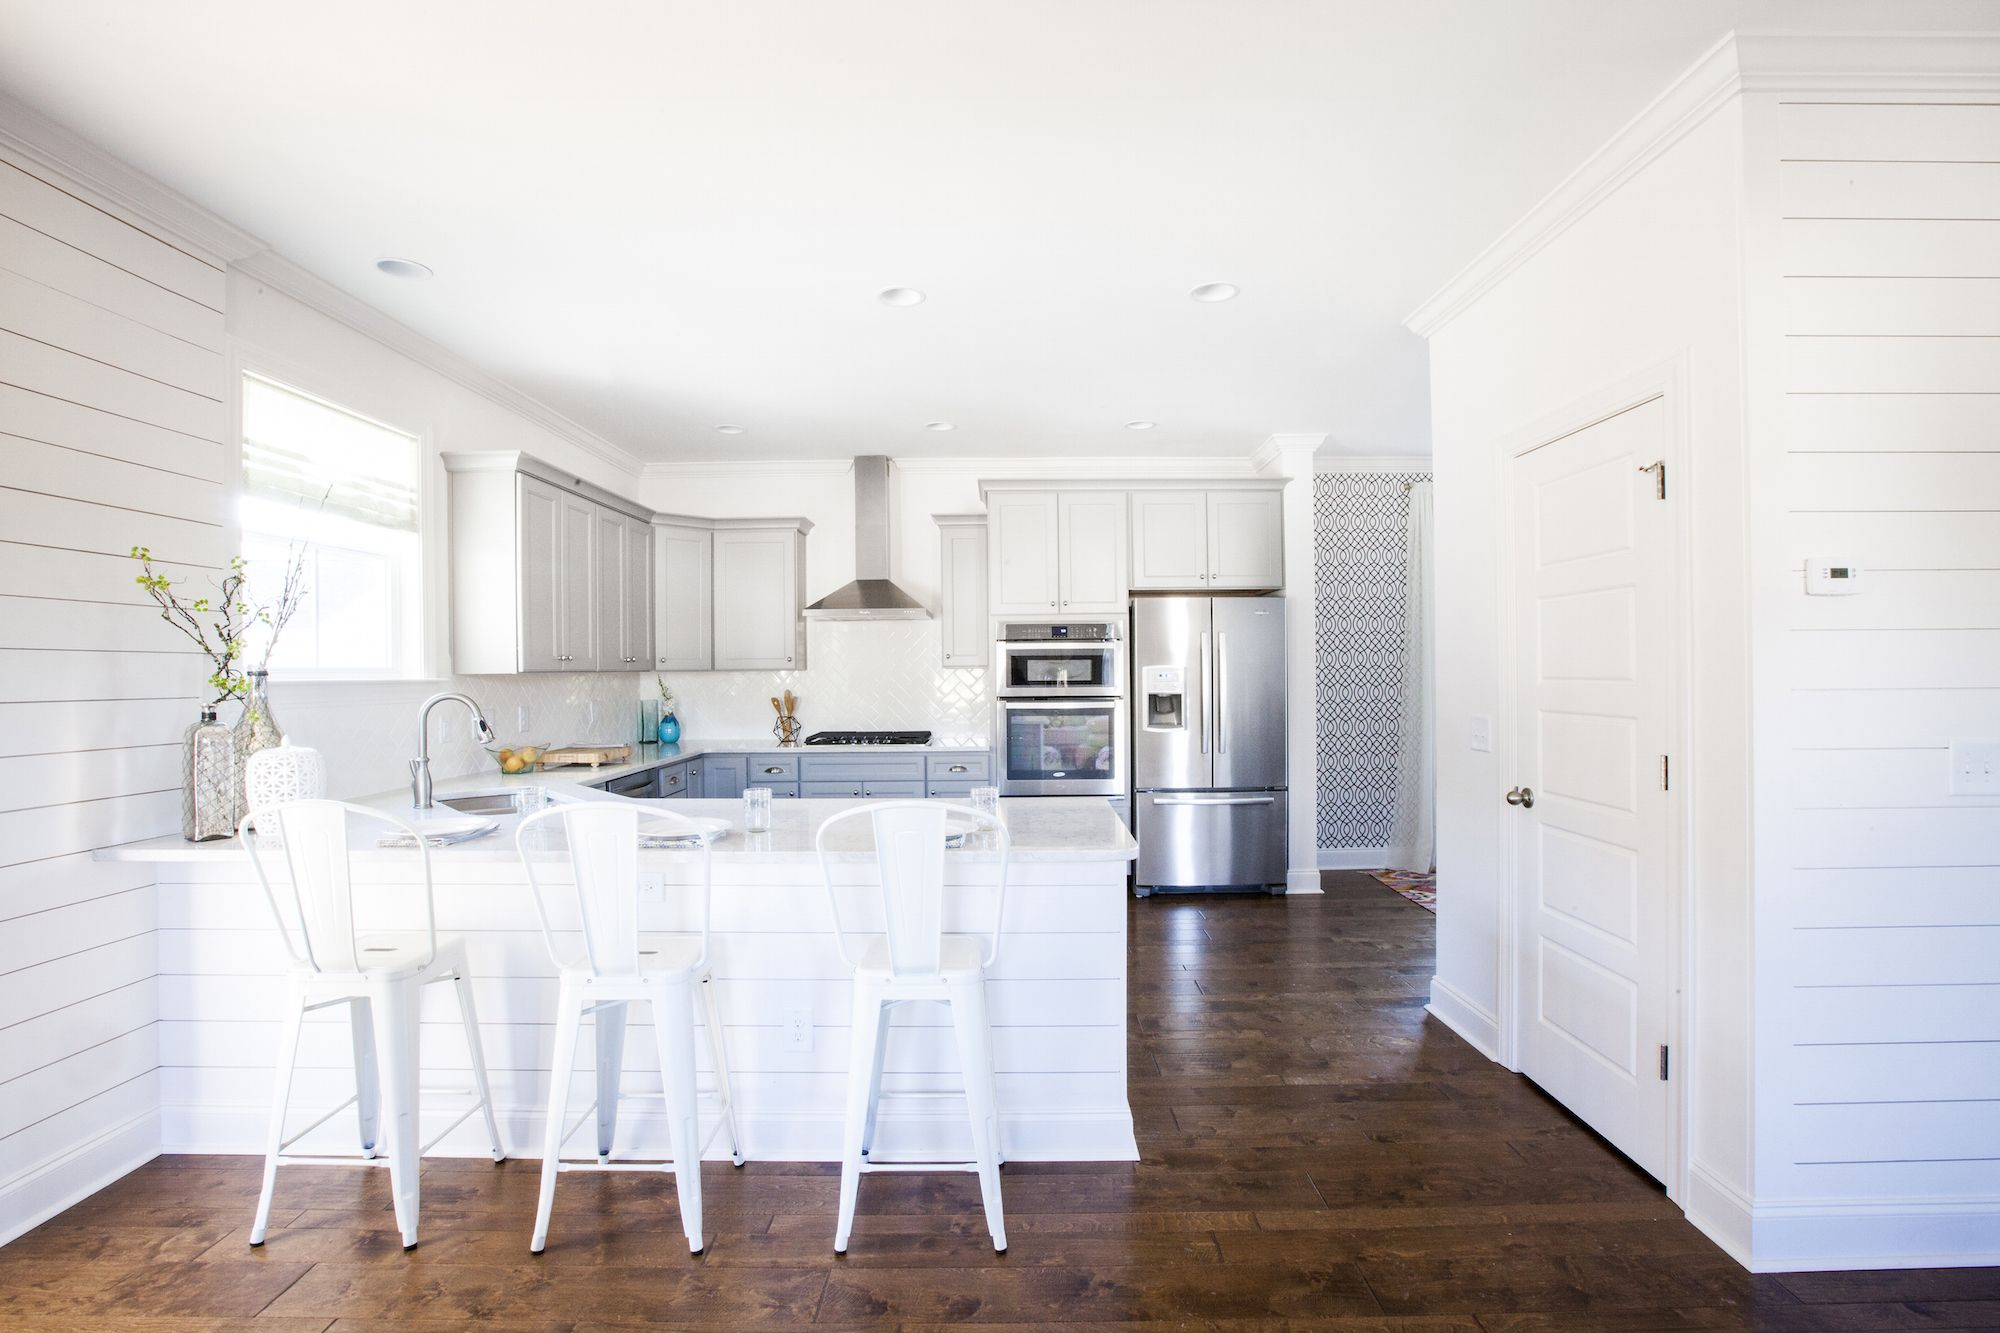 Kitchen of a new home in Crescent Homes development the Abbey